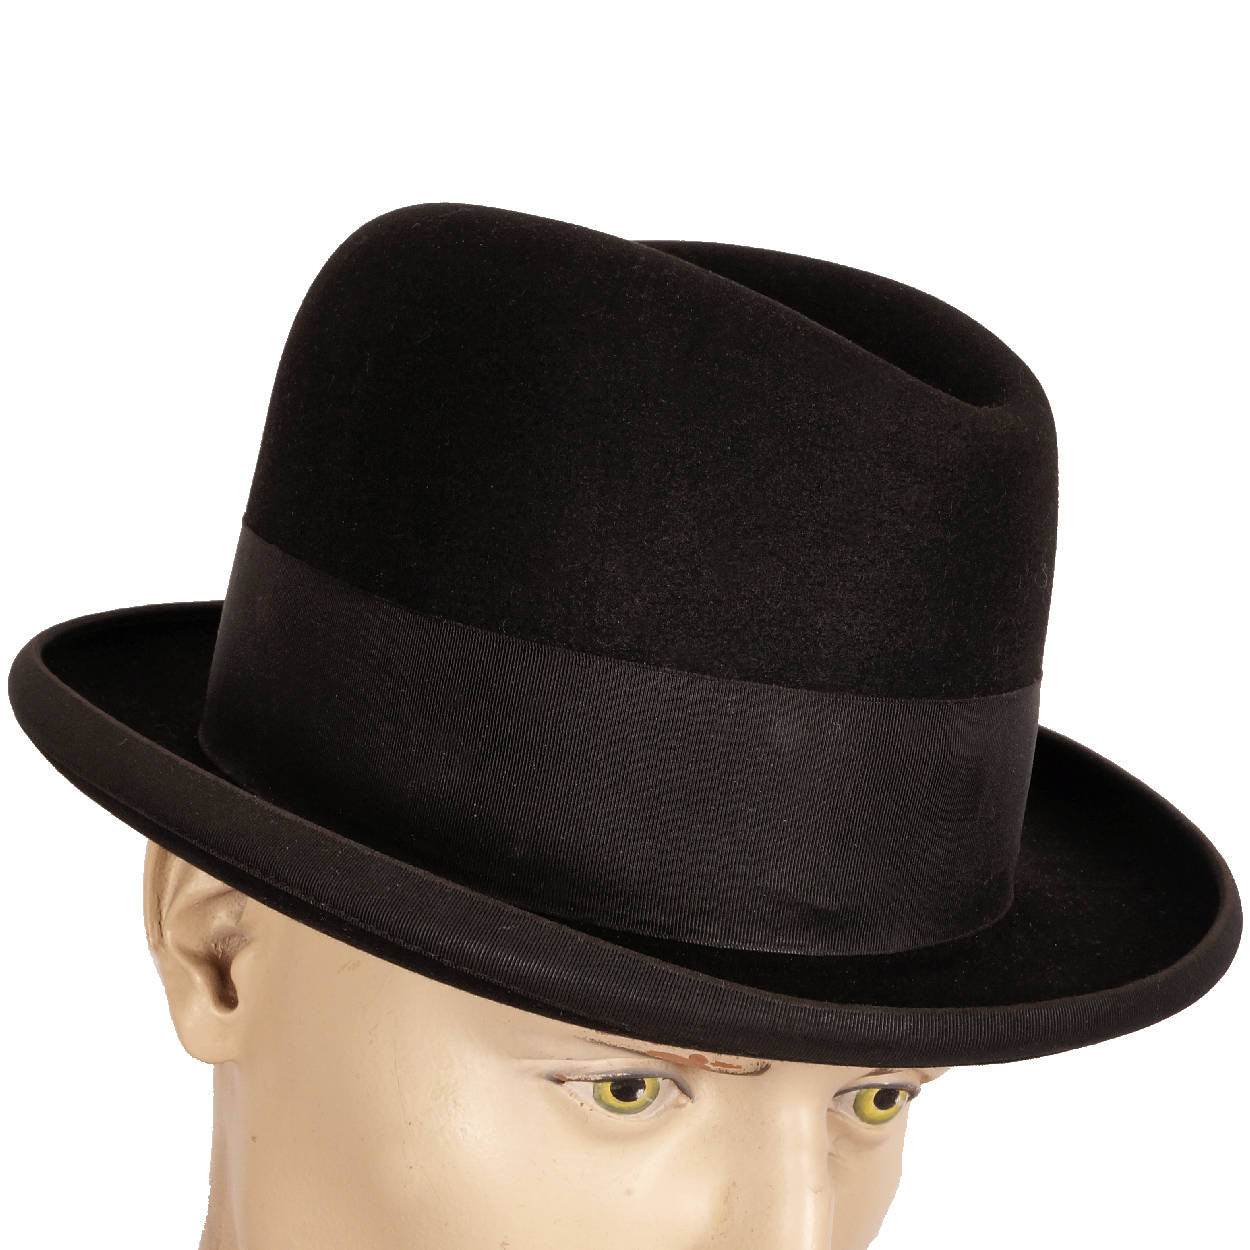 Vintage Lock And Co English Homburg Hat Black Formal Fedora Size 7 1 8 To 7 1 4 Homburg hats offers a hat option that provides style and flair for men of any generation. vintage lock and co english homburg hat